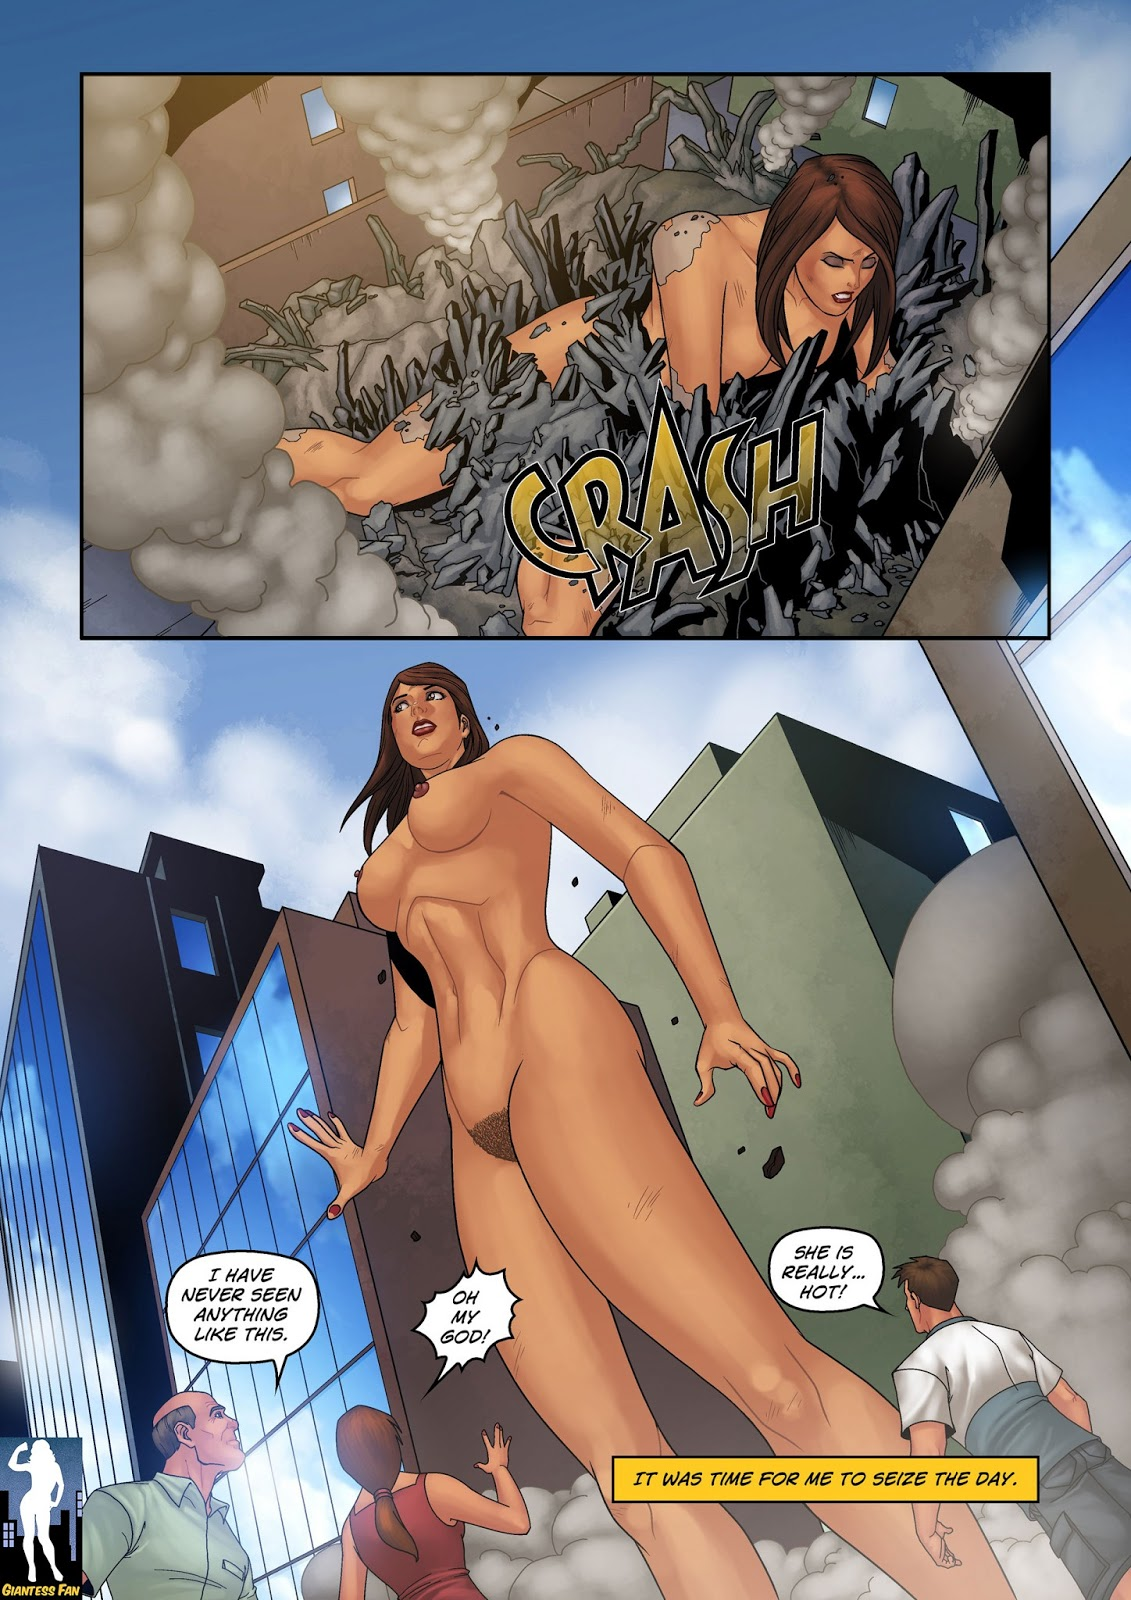 Giantess club porno sexy toons